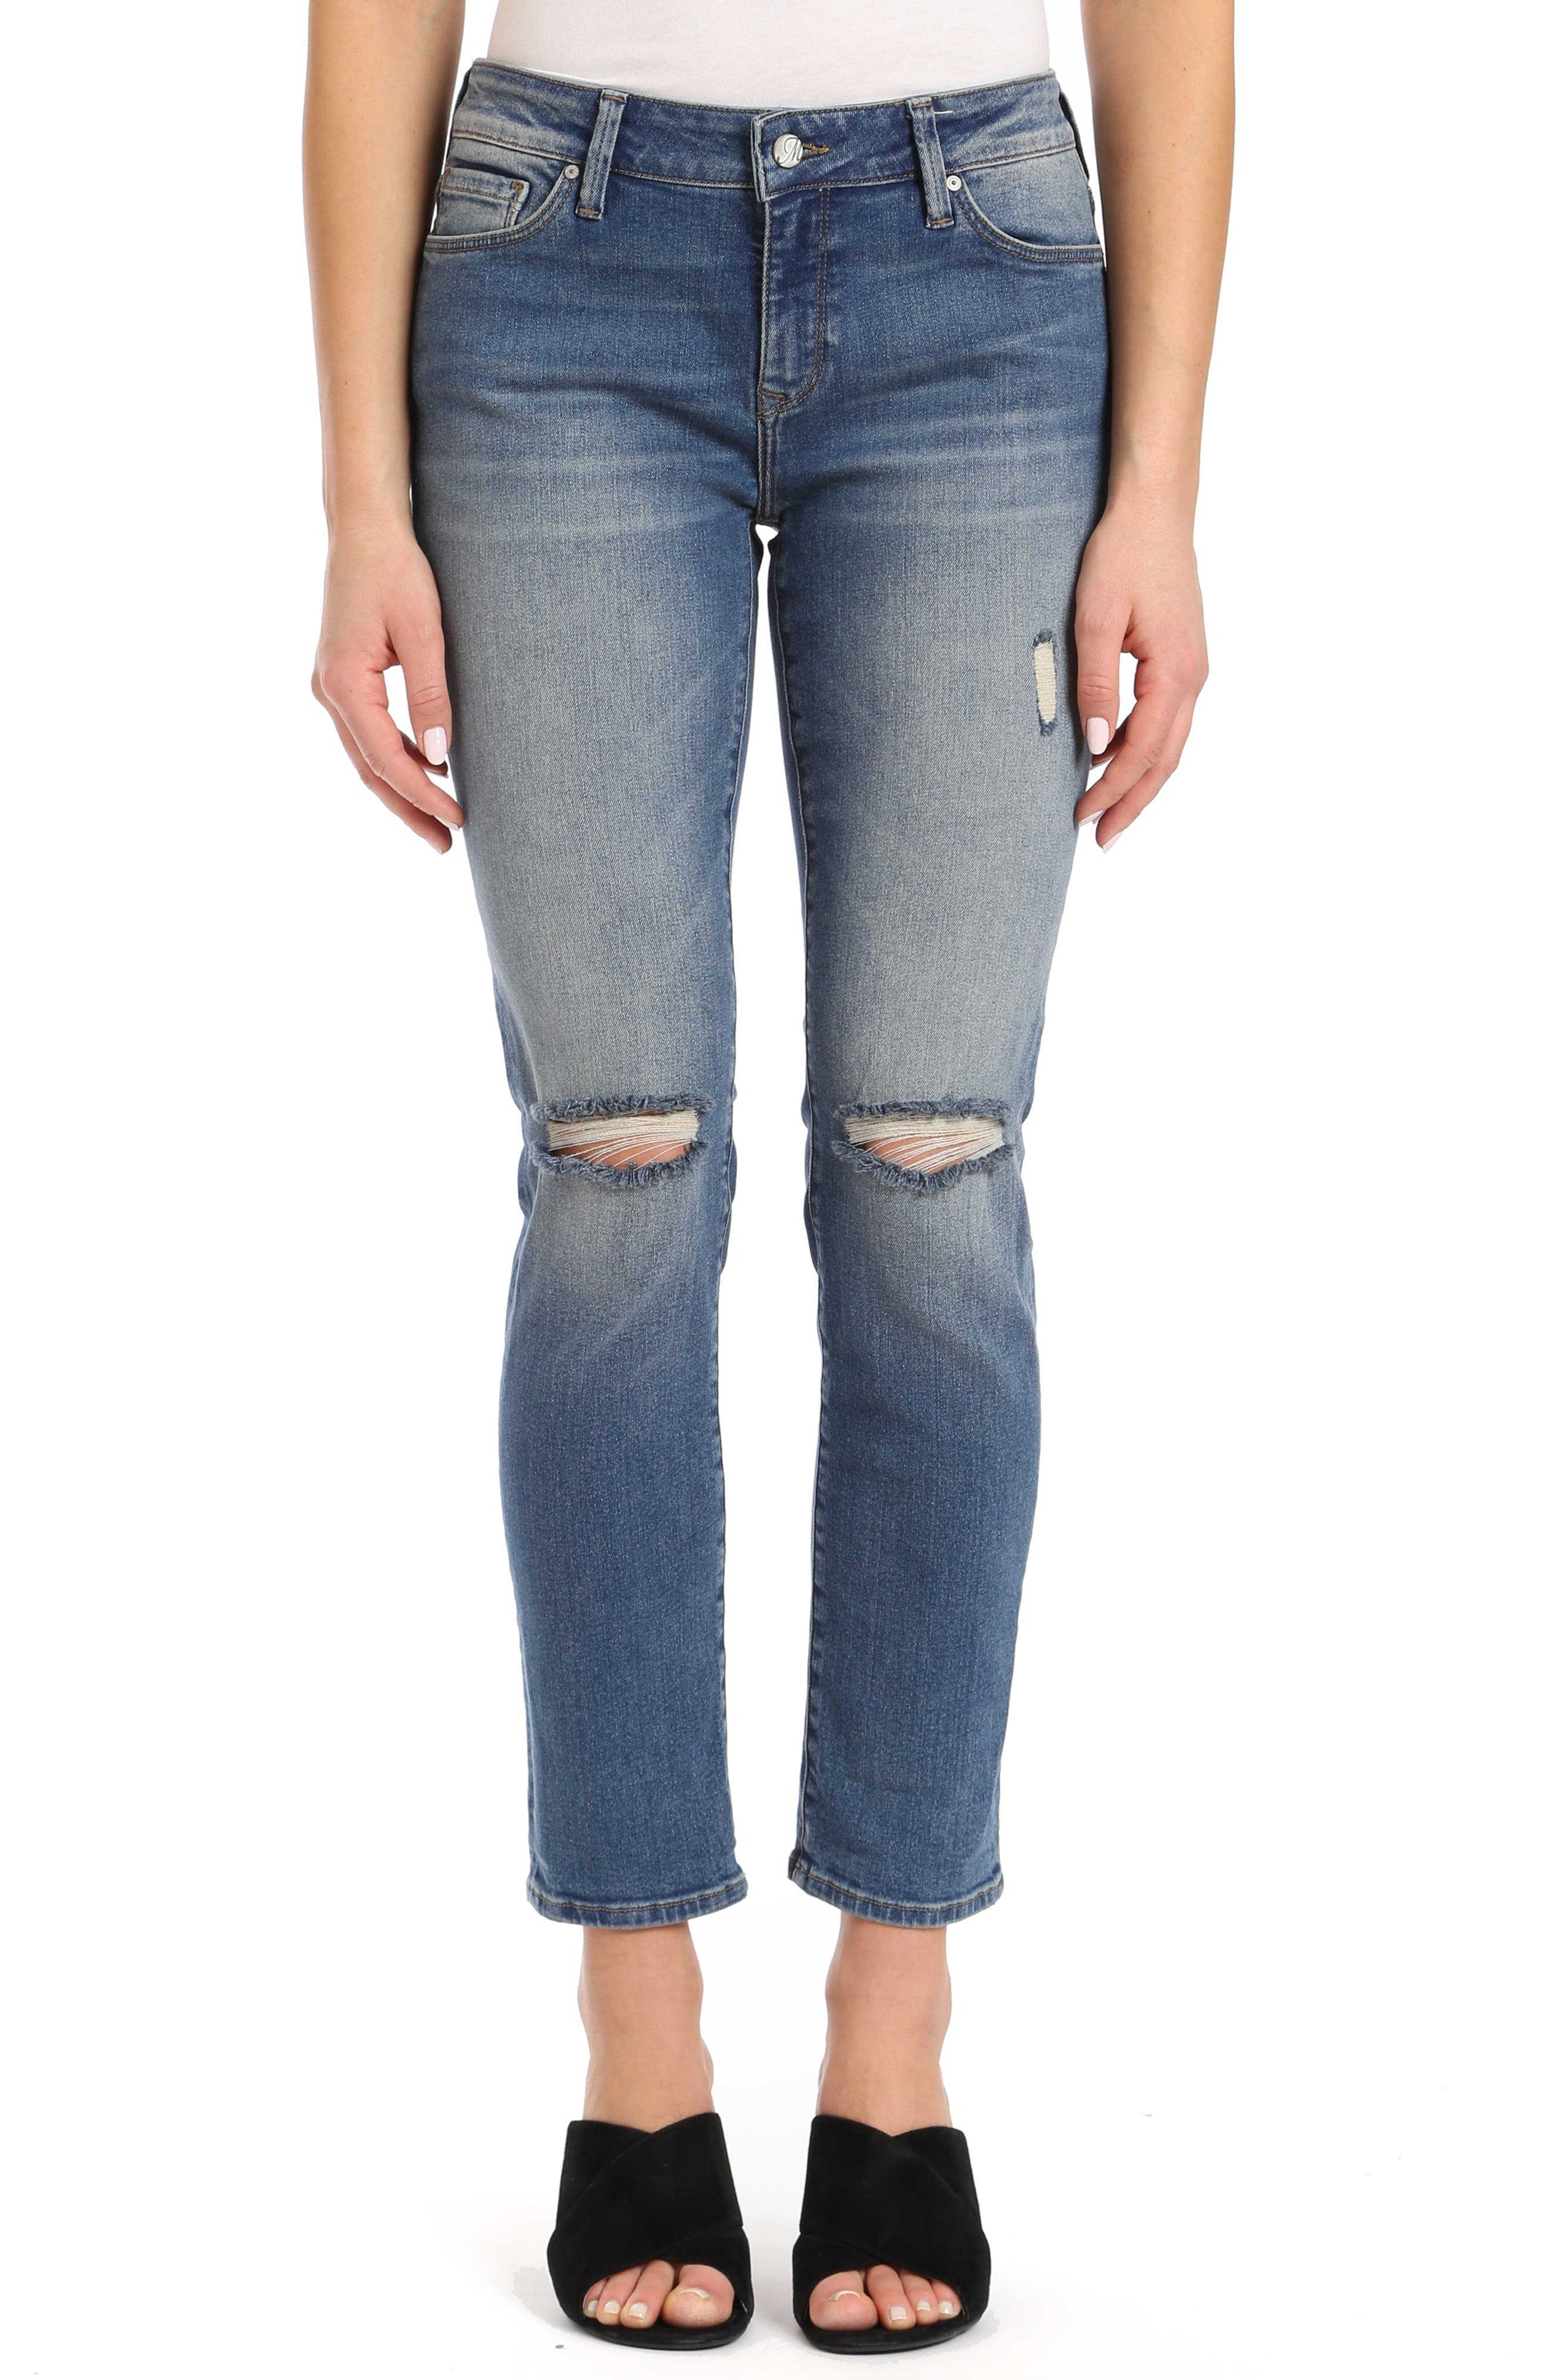 MAVI JEANS Ada Ripped Slim Jeans in Mid Shaded 80S Vintage